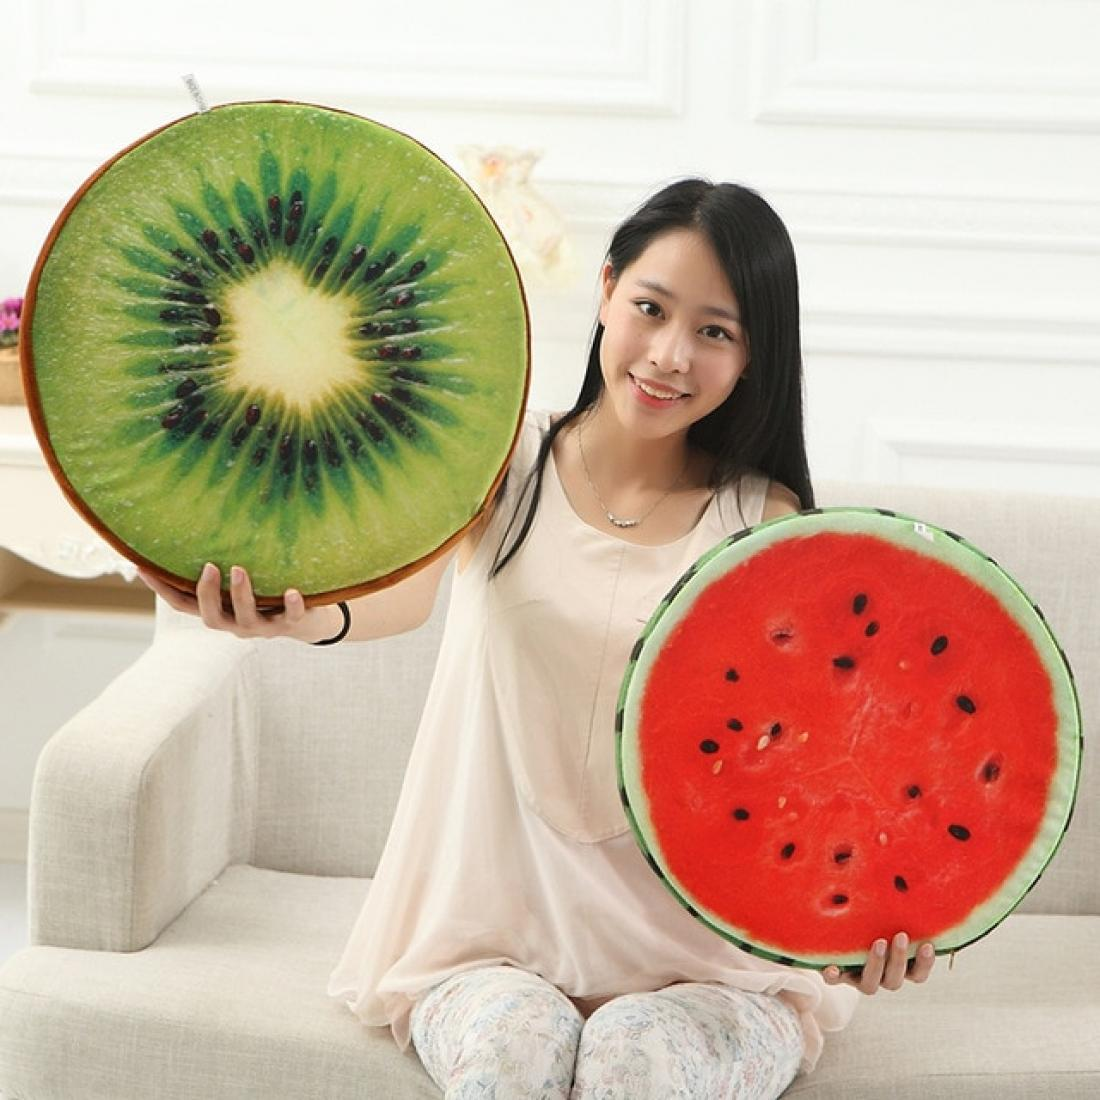 40cm fruit cushion leaning on Watermelon plush toys Kiwi Wooden stake pillows on the couch pillow birthday originality present